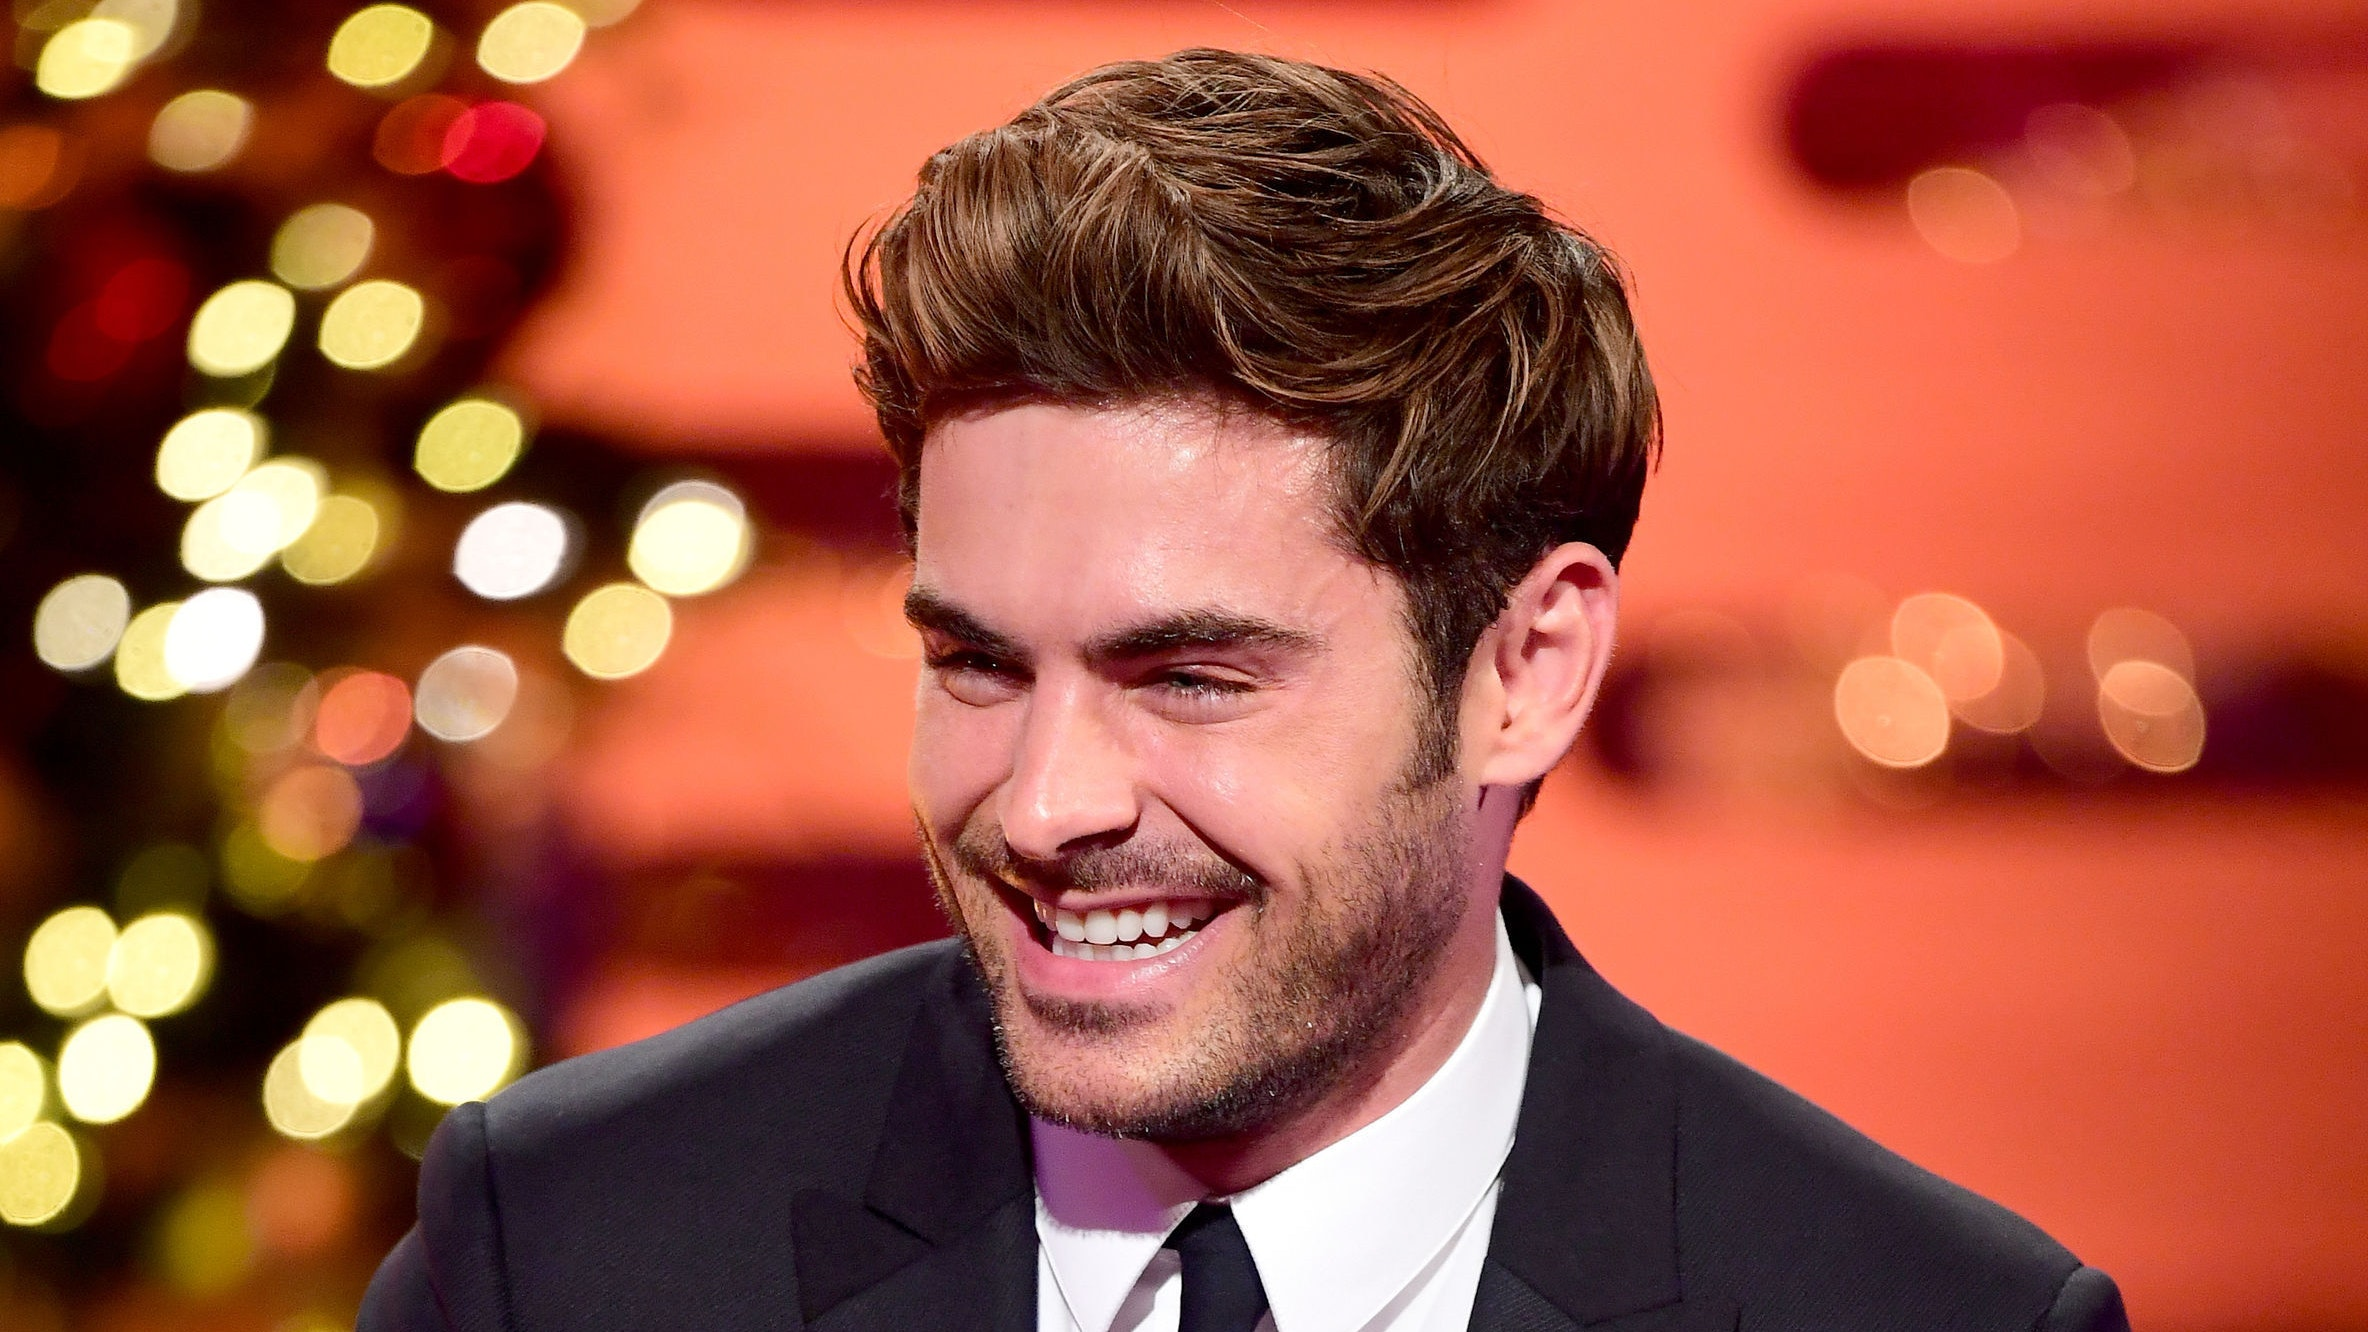 Zac Efron terrifies as Ted Bundy in Extremely Wicked